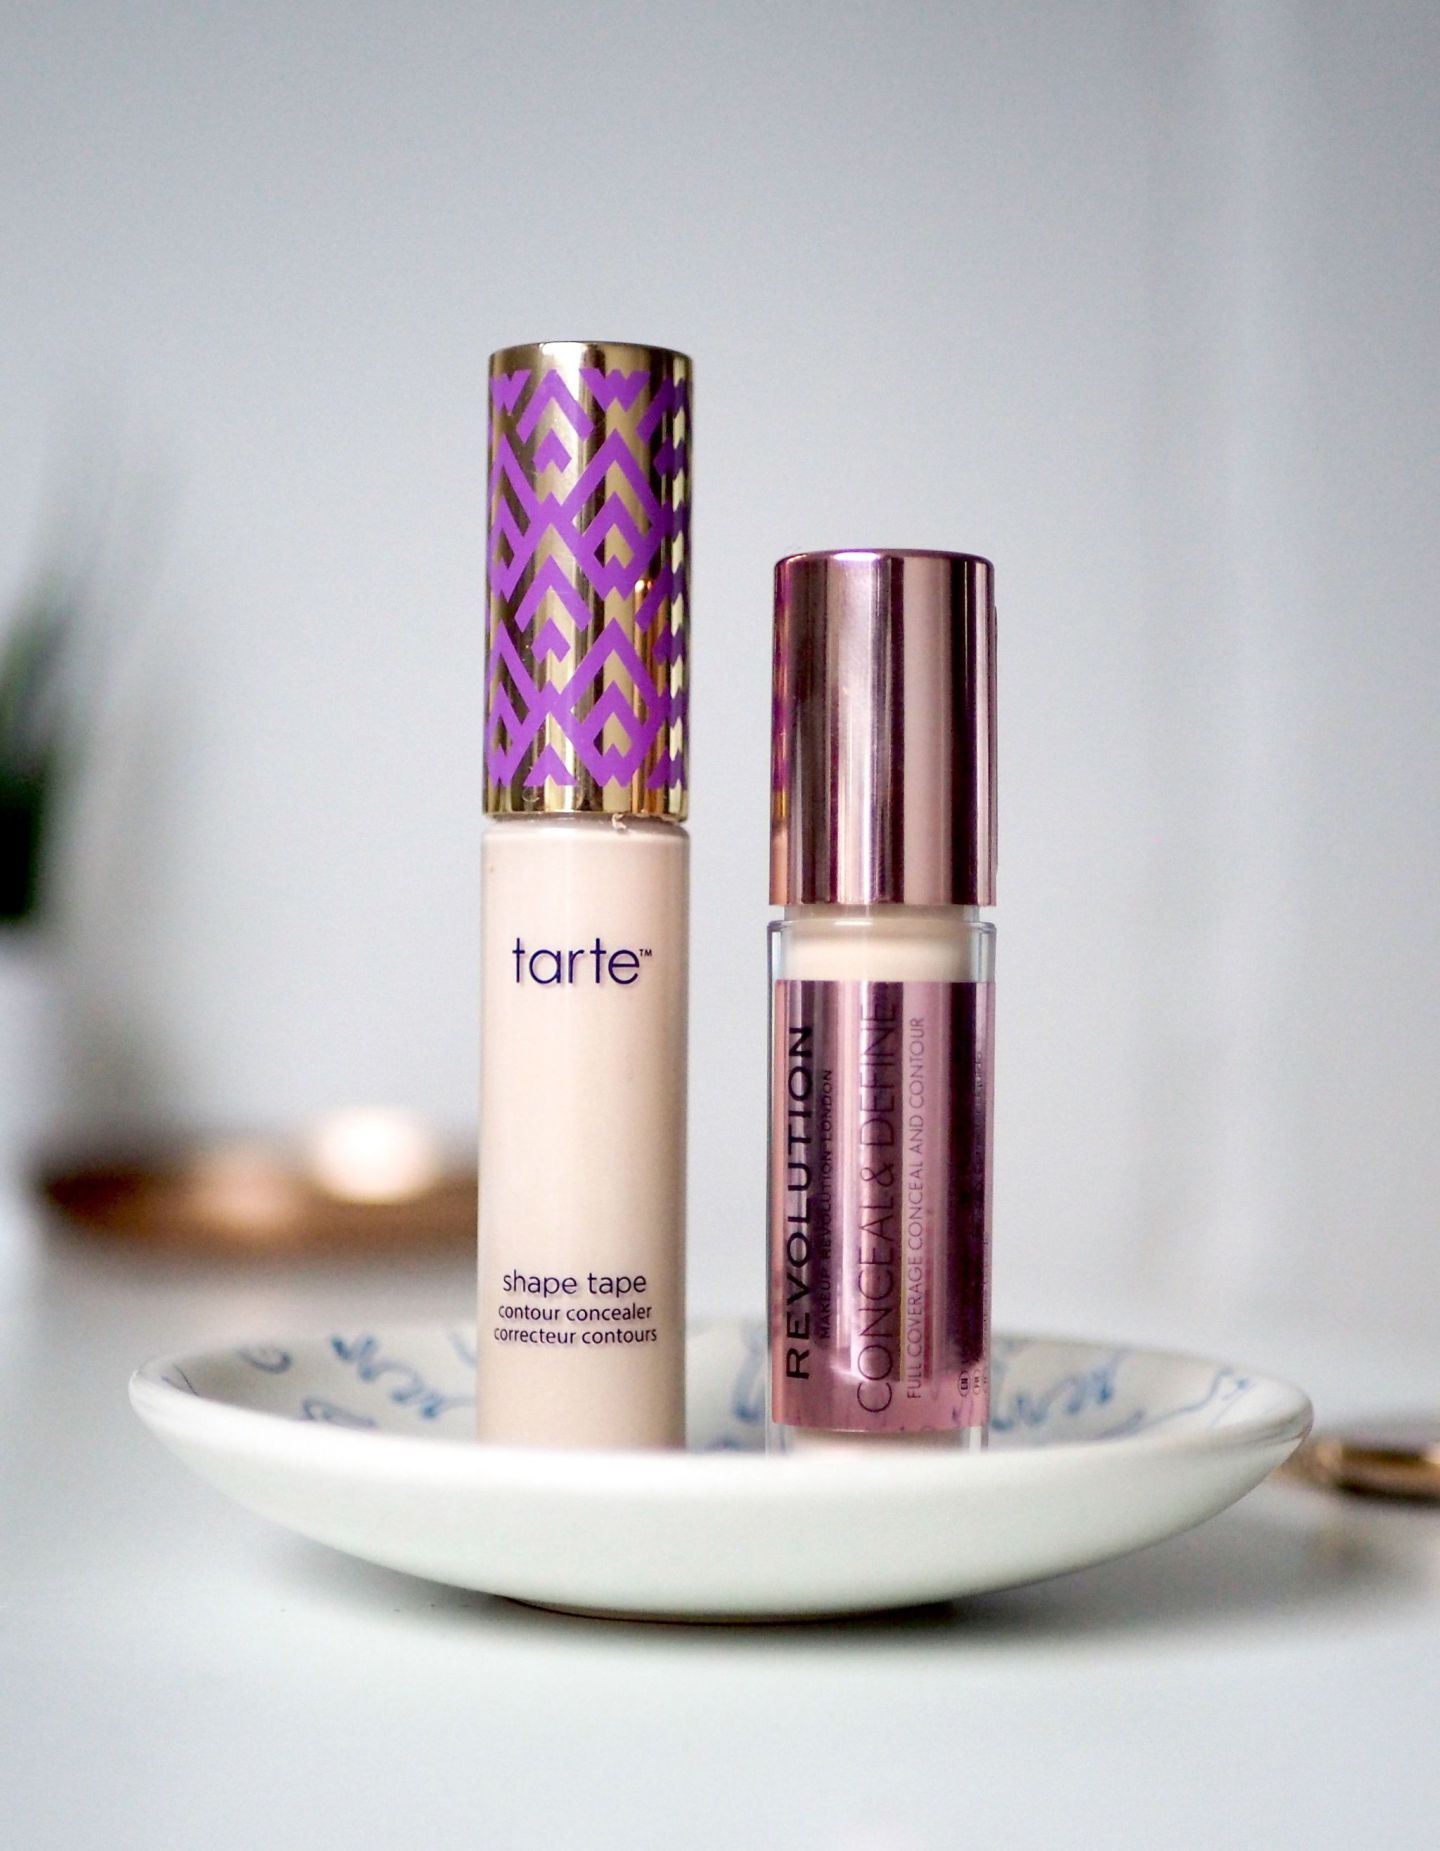 Review of the much hyped full coverage concealer Tarte